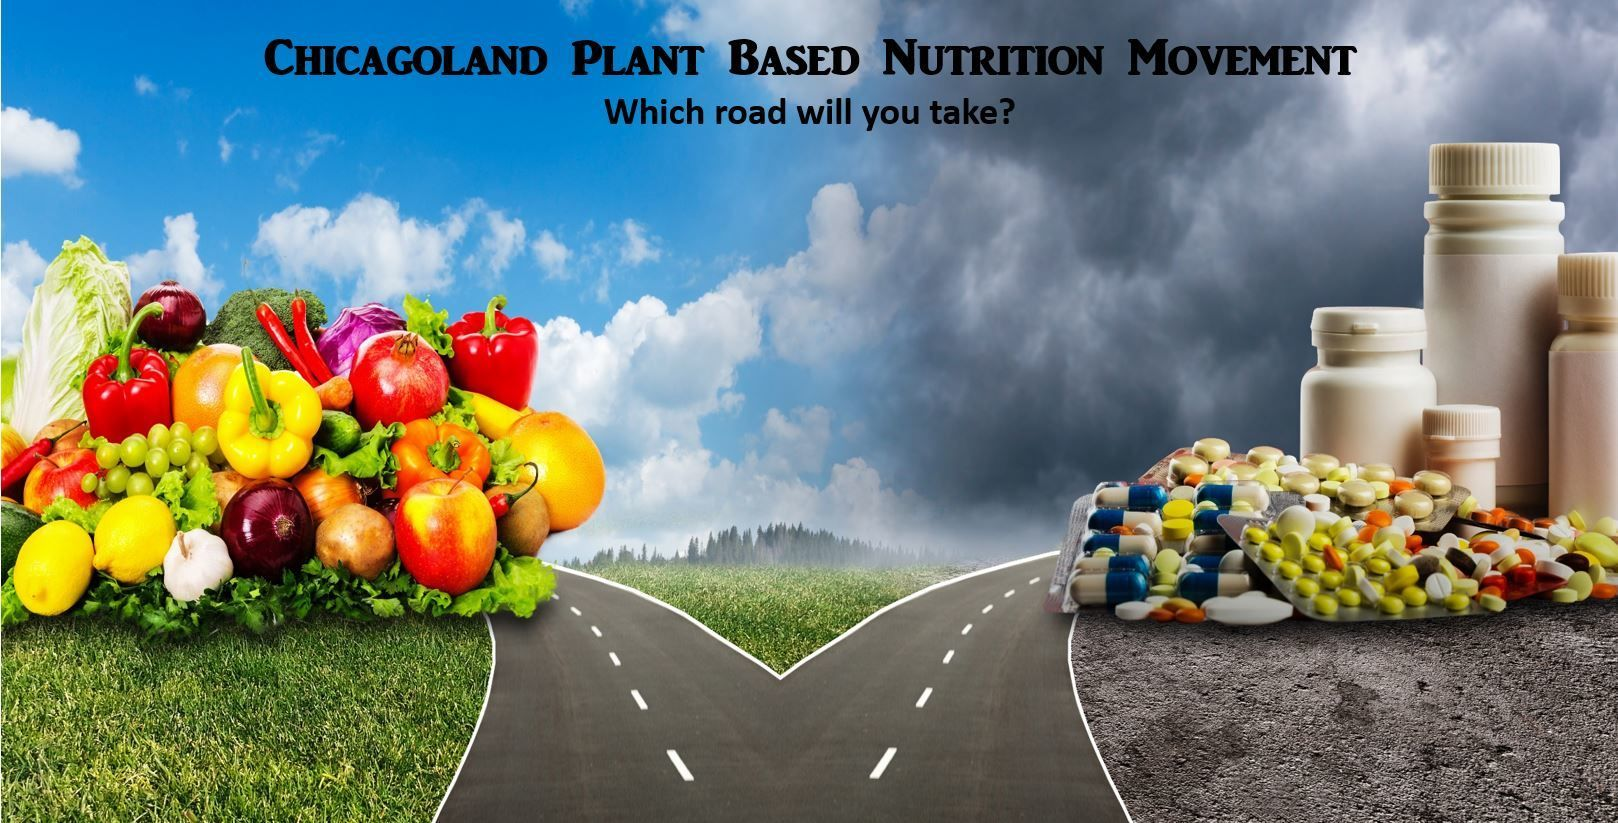 PBNM.org - Chicagoland Plant Based Nutrition Movement -